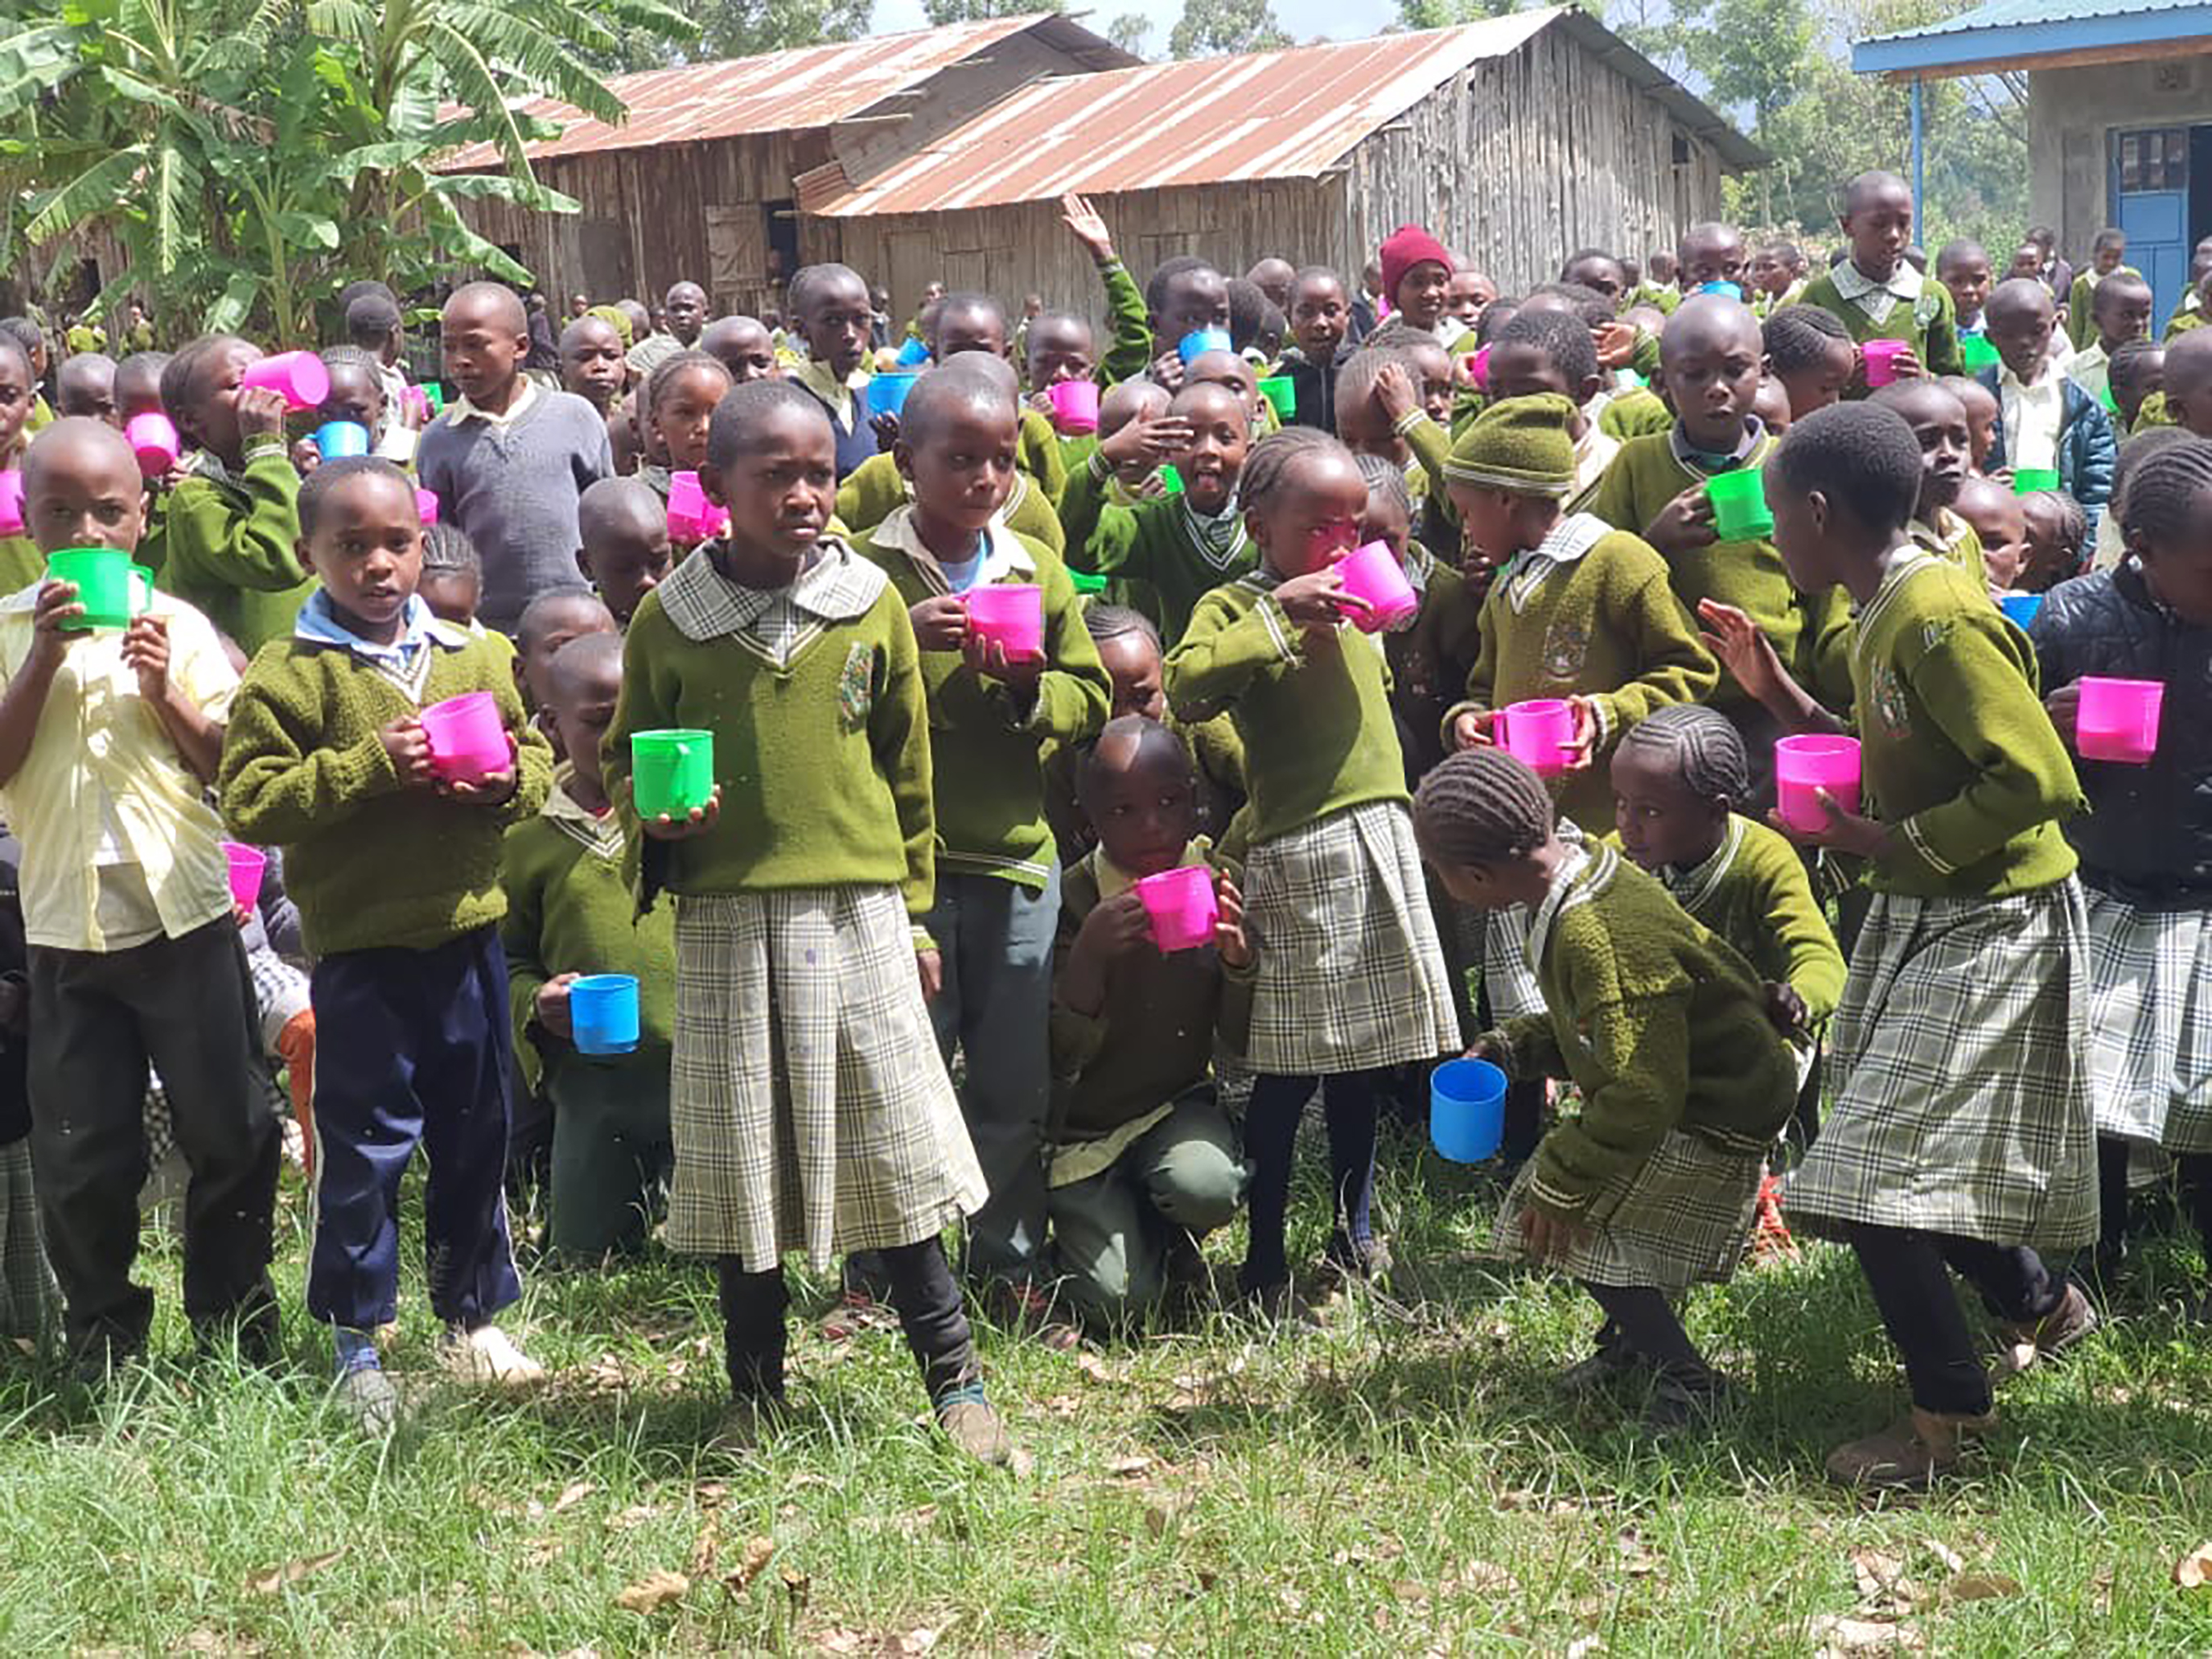 Hundreds of children enjoy their first day of porridge at a needy school in Naro Moru.